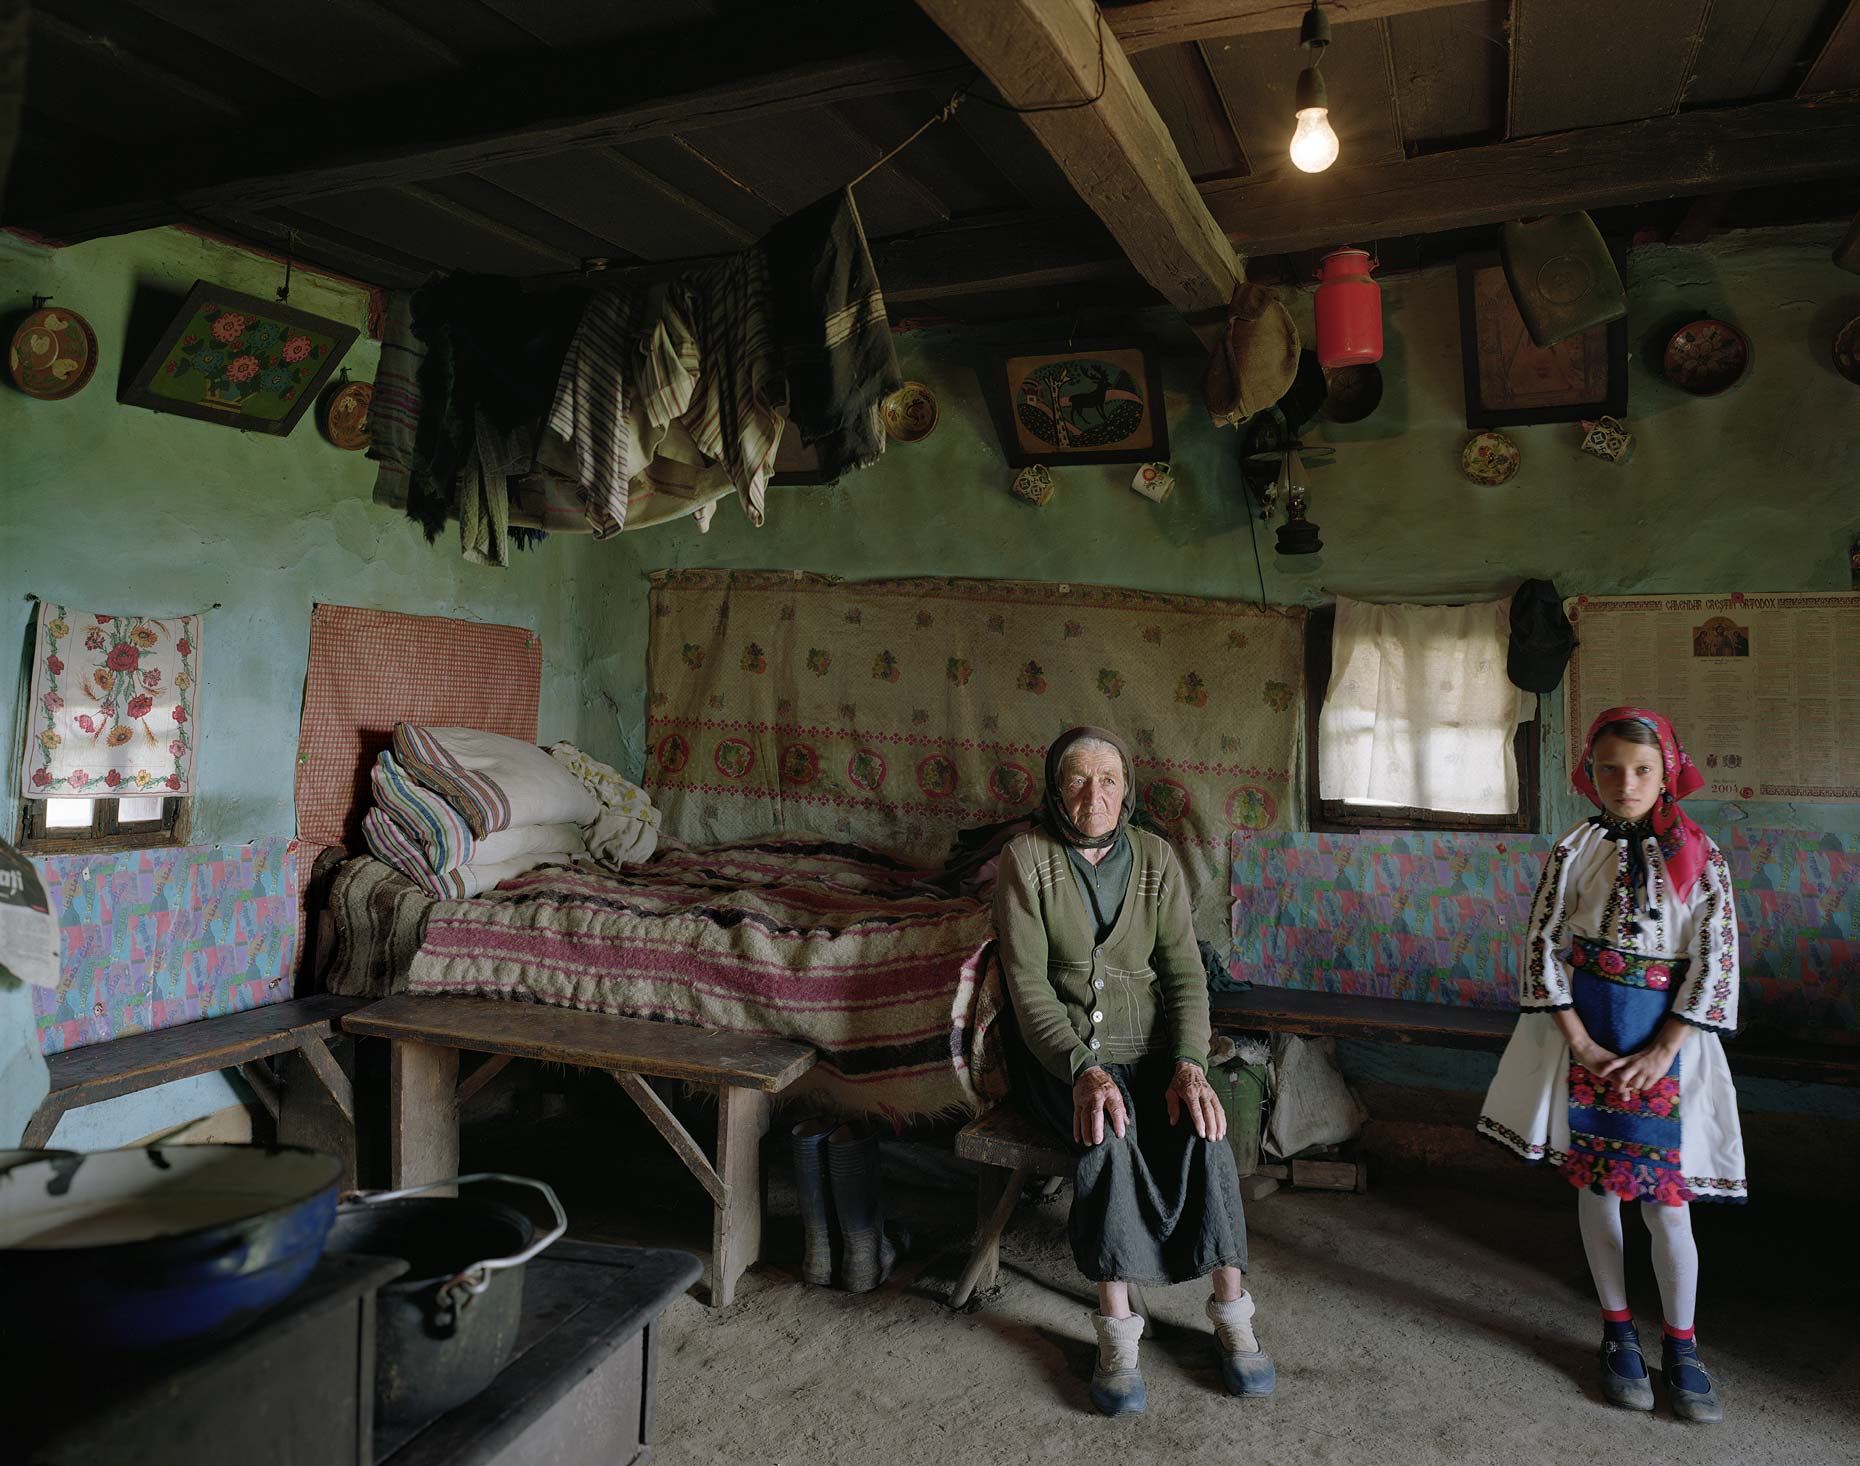 Grandmother and Granddaughter, Maramures, Romania, 2007